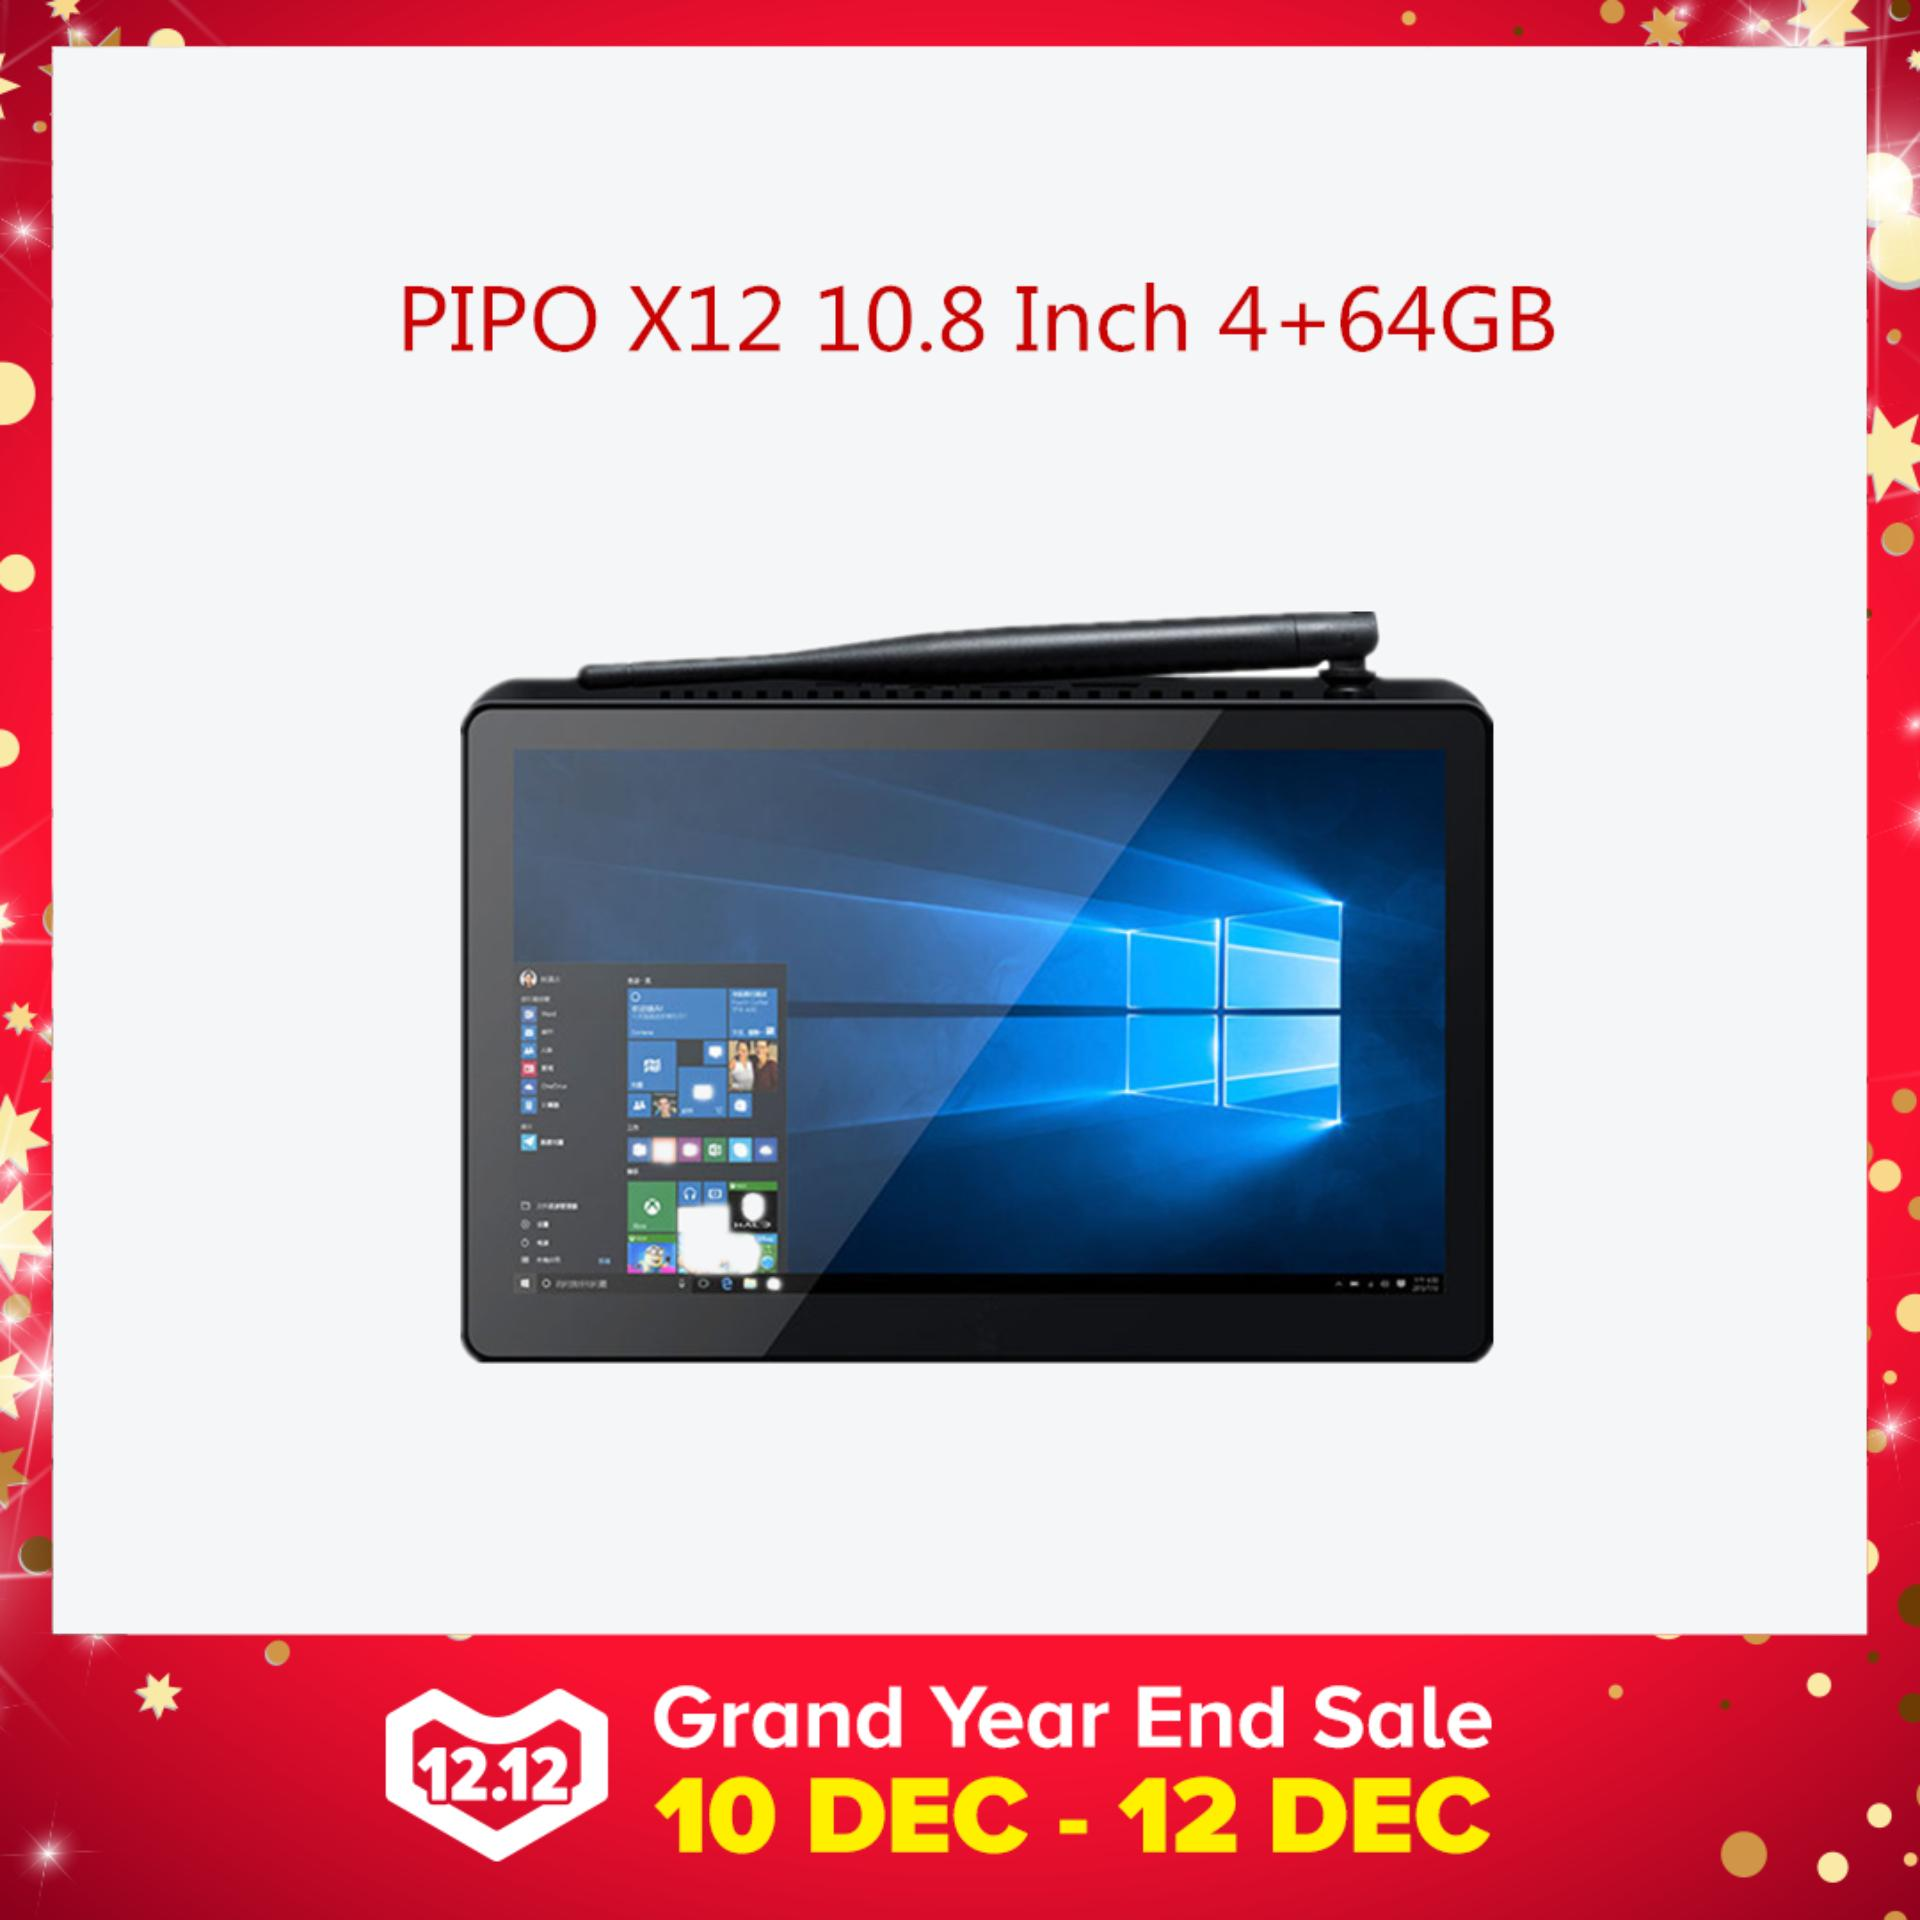 PIPO X12 64GB Intel Cherry Trail 8350 Quad Core 10.8 Inch Windows 10 TV Box Tablet With Stylus Black - intl